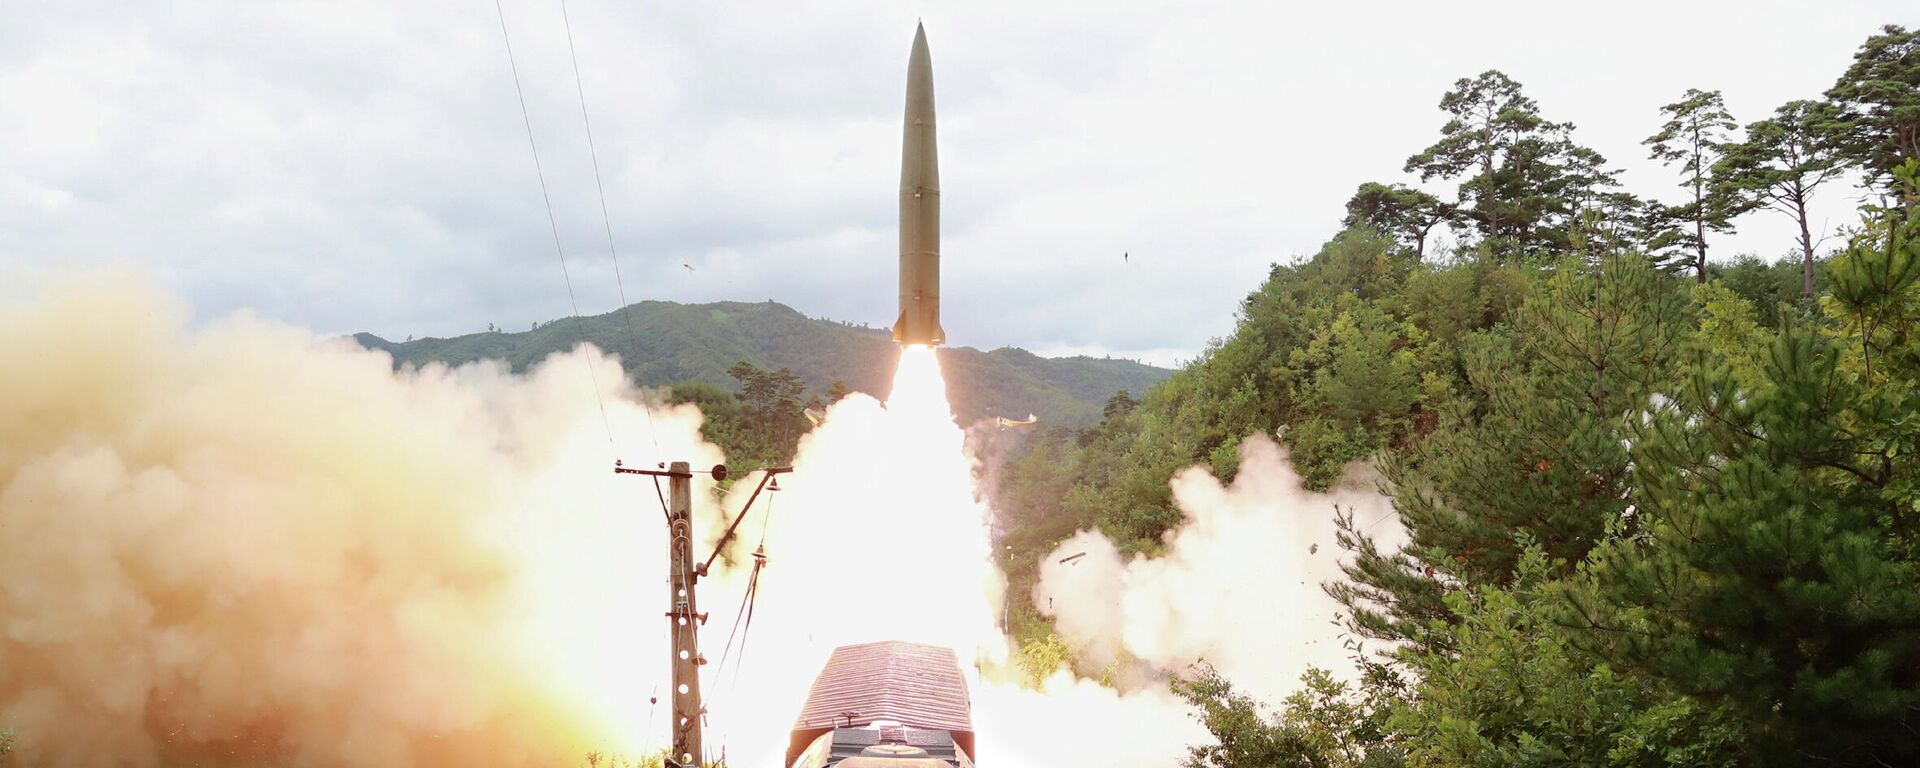 A missile is seen launched during a drill of the Railway Mobile Missile Regiment in North Korea, in this image supplied by North Korea's Korean Central News Agency on September 16, 2021 - Sputnik International, 1920, 16.09.2021